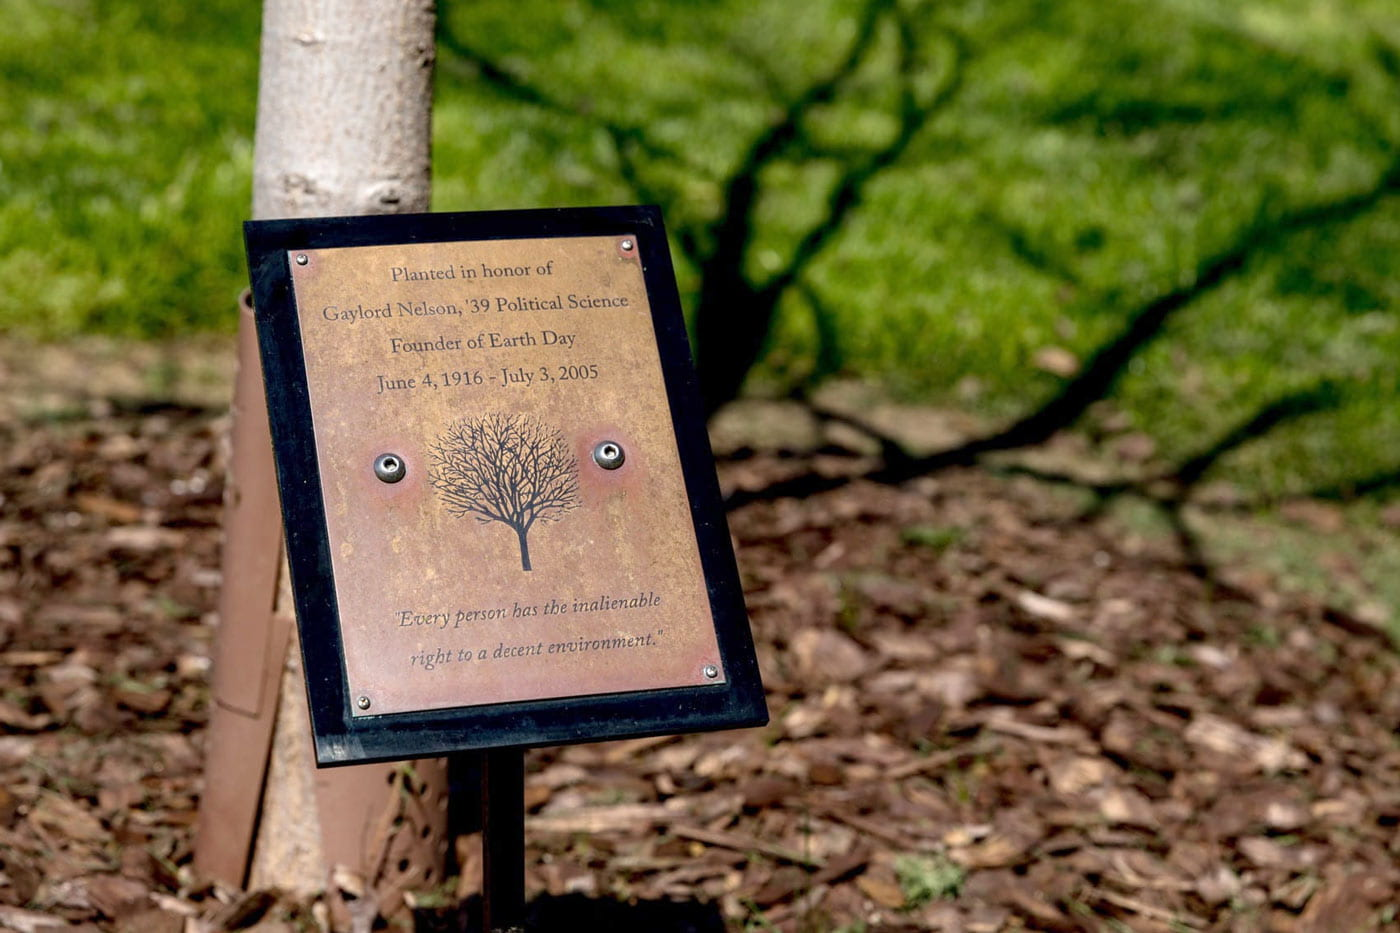 A plaque in front of a tree which says planted in honor of Gaylord Nelson.